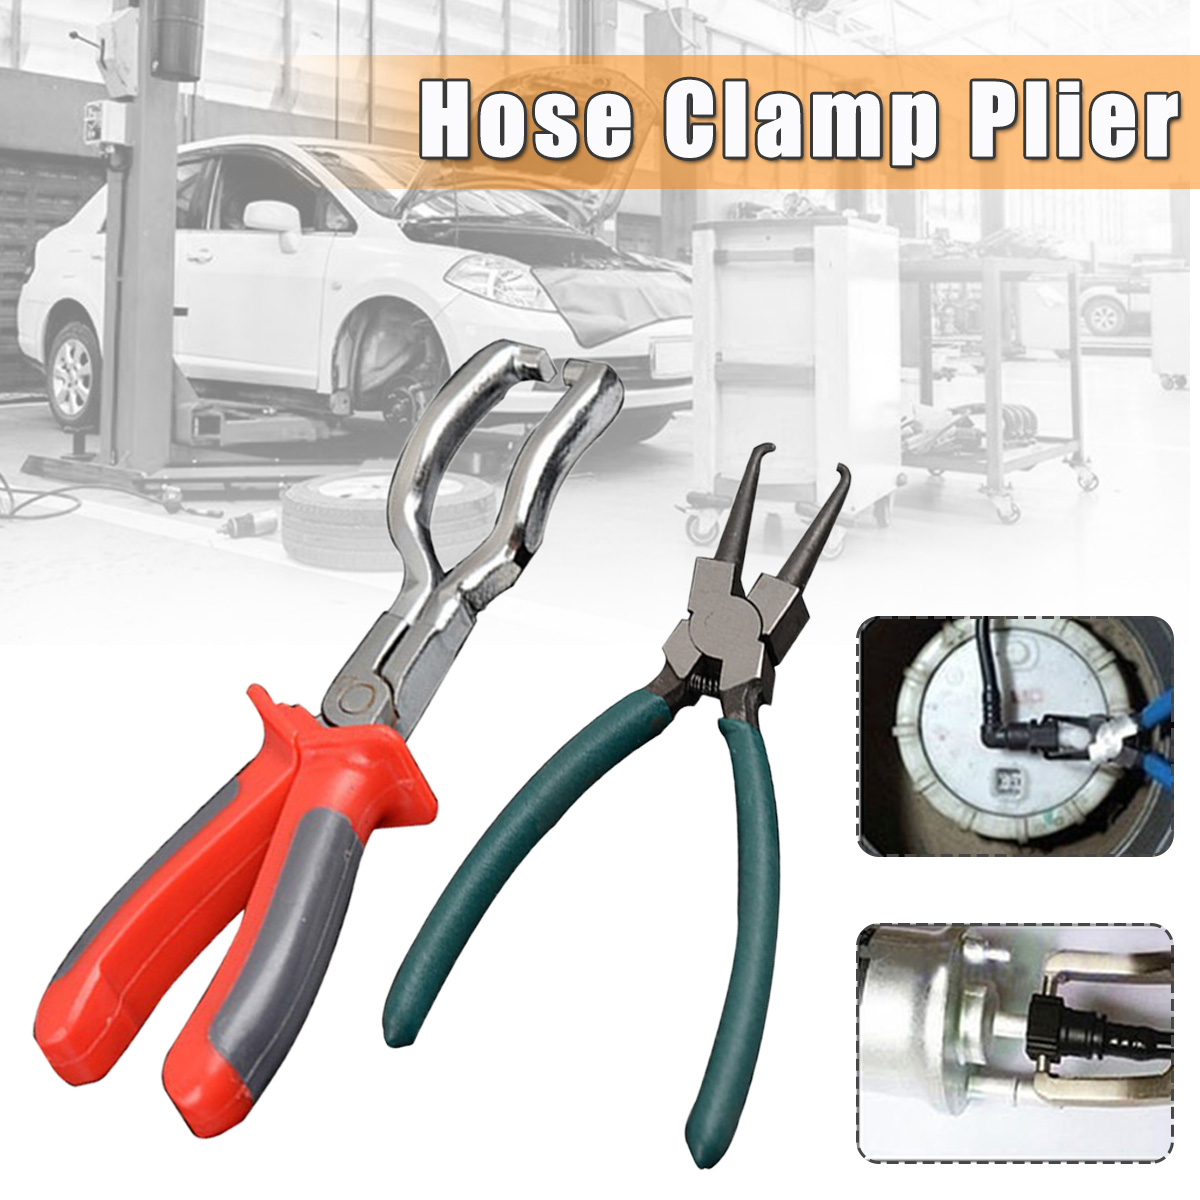 7 Inch / 9 Inch Joint Clamping Pliers Fuel Filters Hose Pipe Buckle Removal Caliper For Car Auto Vehicle Tools